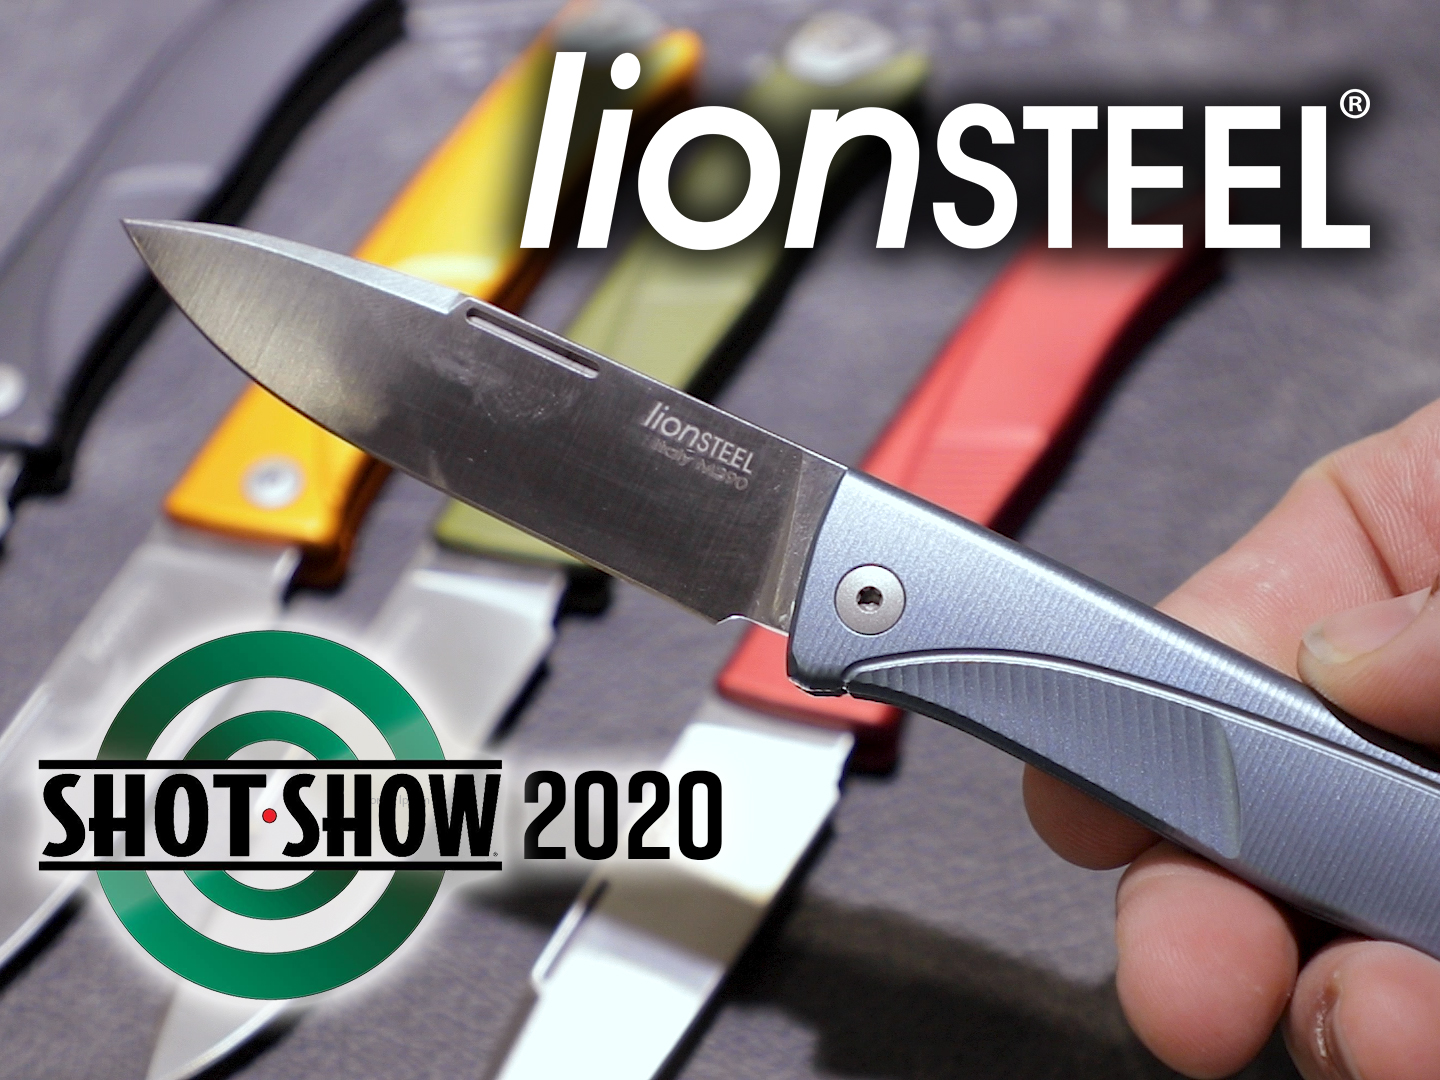 Lionsteel shot show 2020 main image